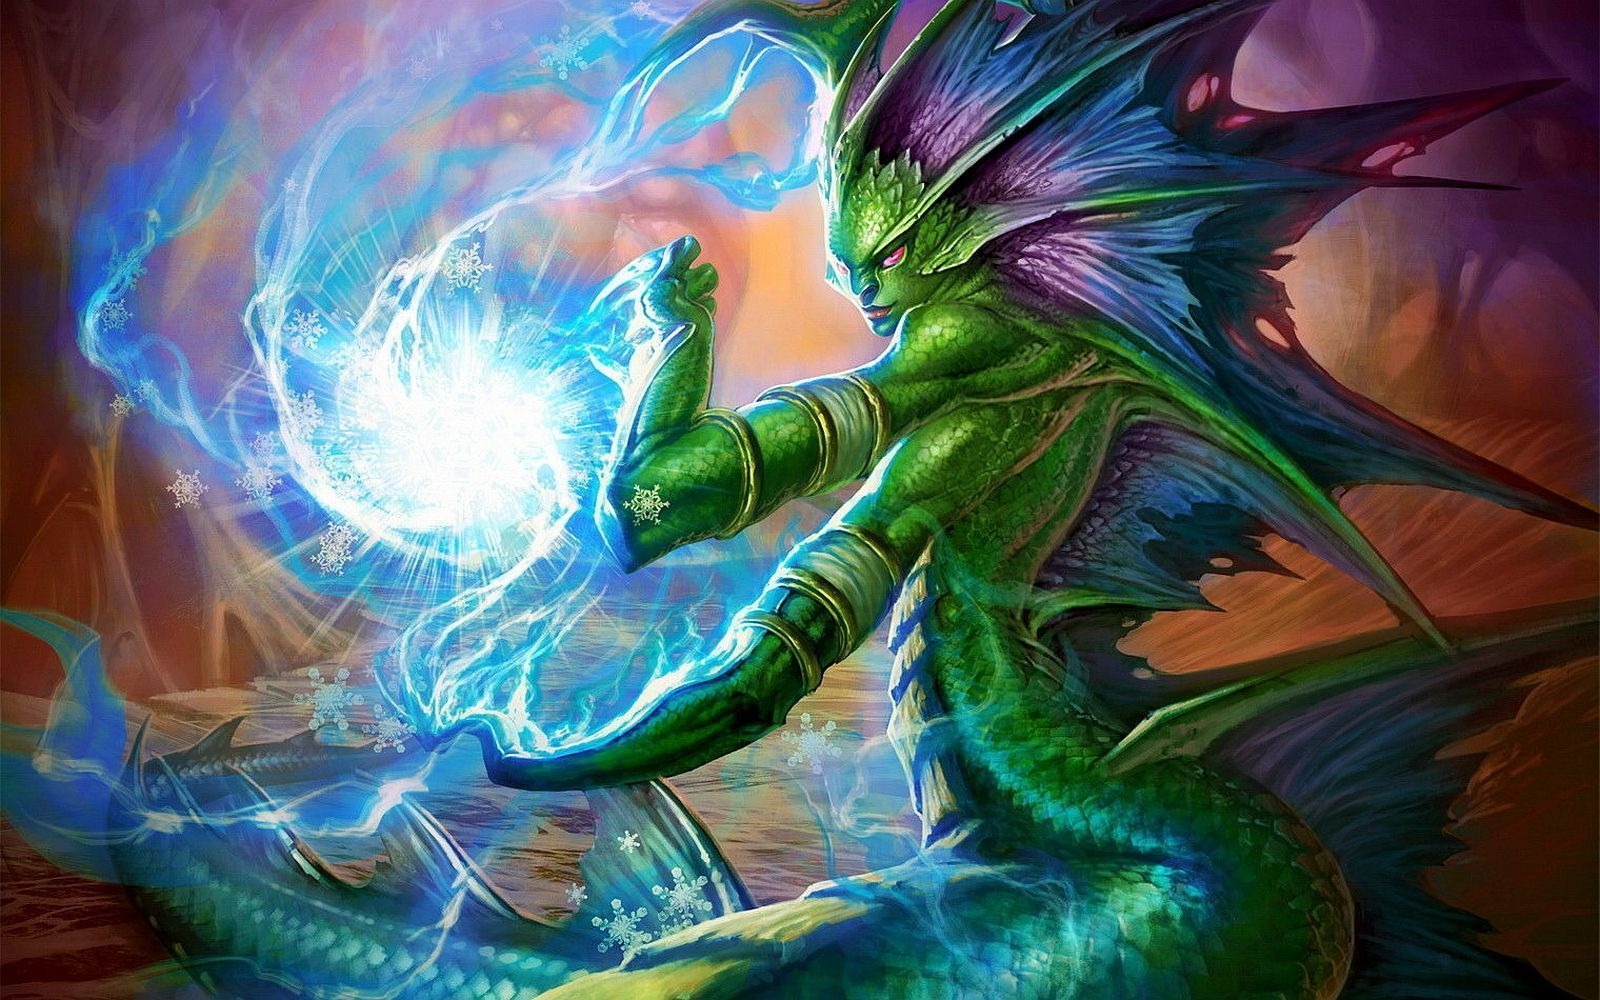 Naga wallpapers wallpaper zone dungeons and dragons pinterest naga wallpapers wallpaper zone altavistaventures Gallery